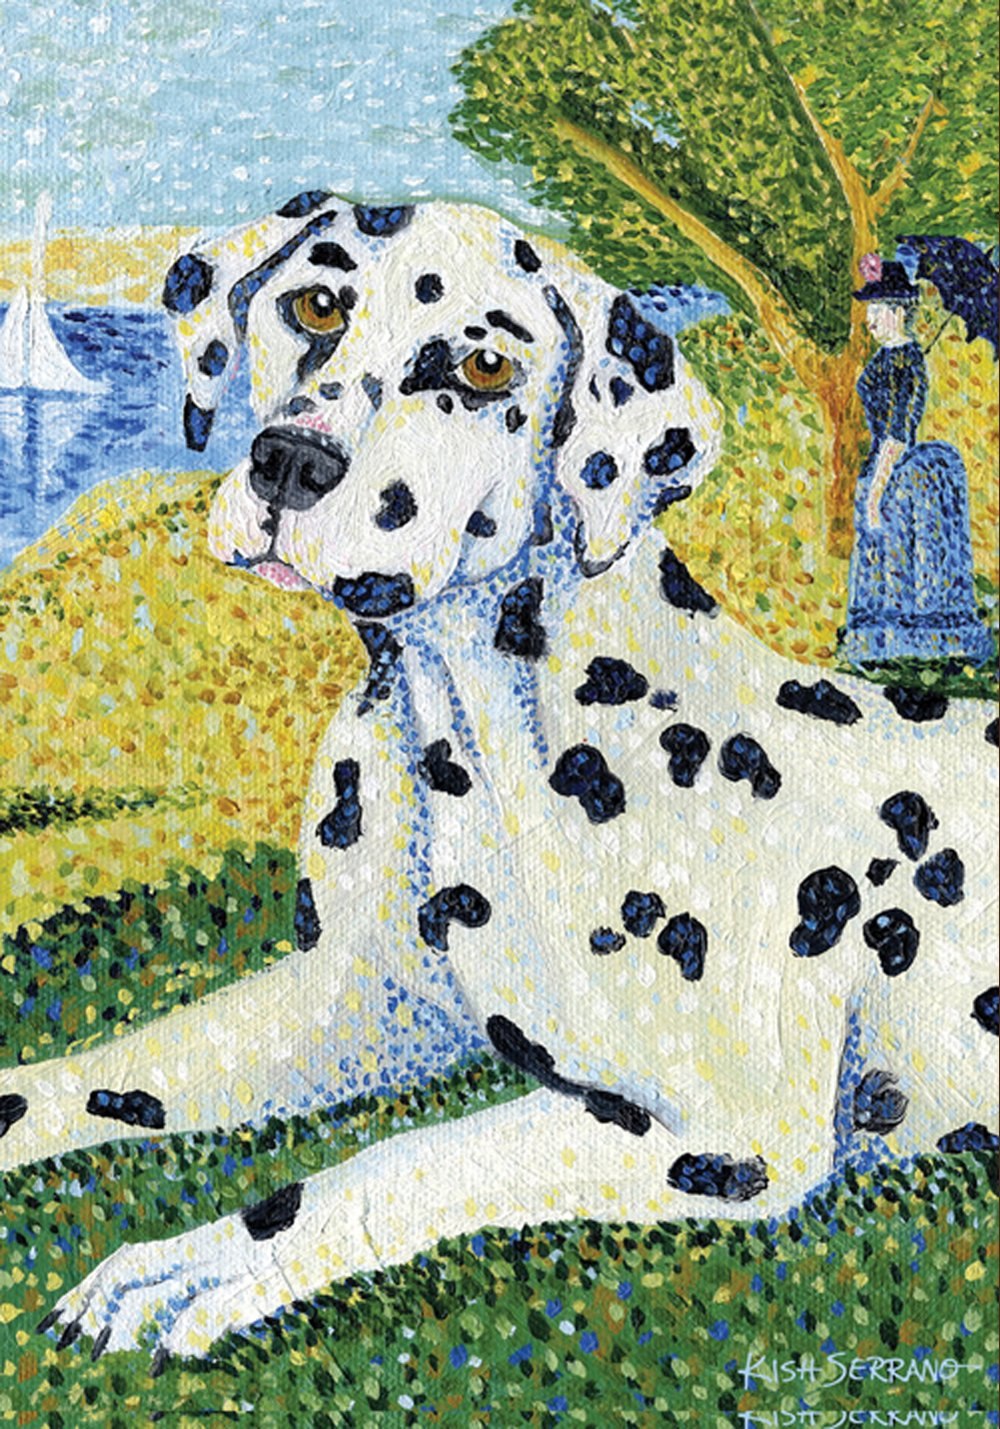 Toland Home Garden Grrrault Dalmation 12.5 x 18 Inch Decorative Classic Puppy Dog Portrait Painting Design Garden Flag